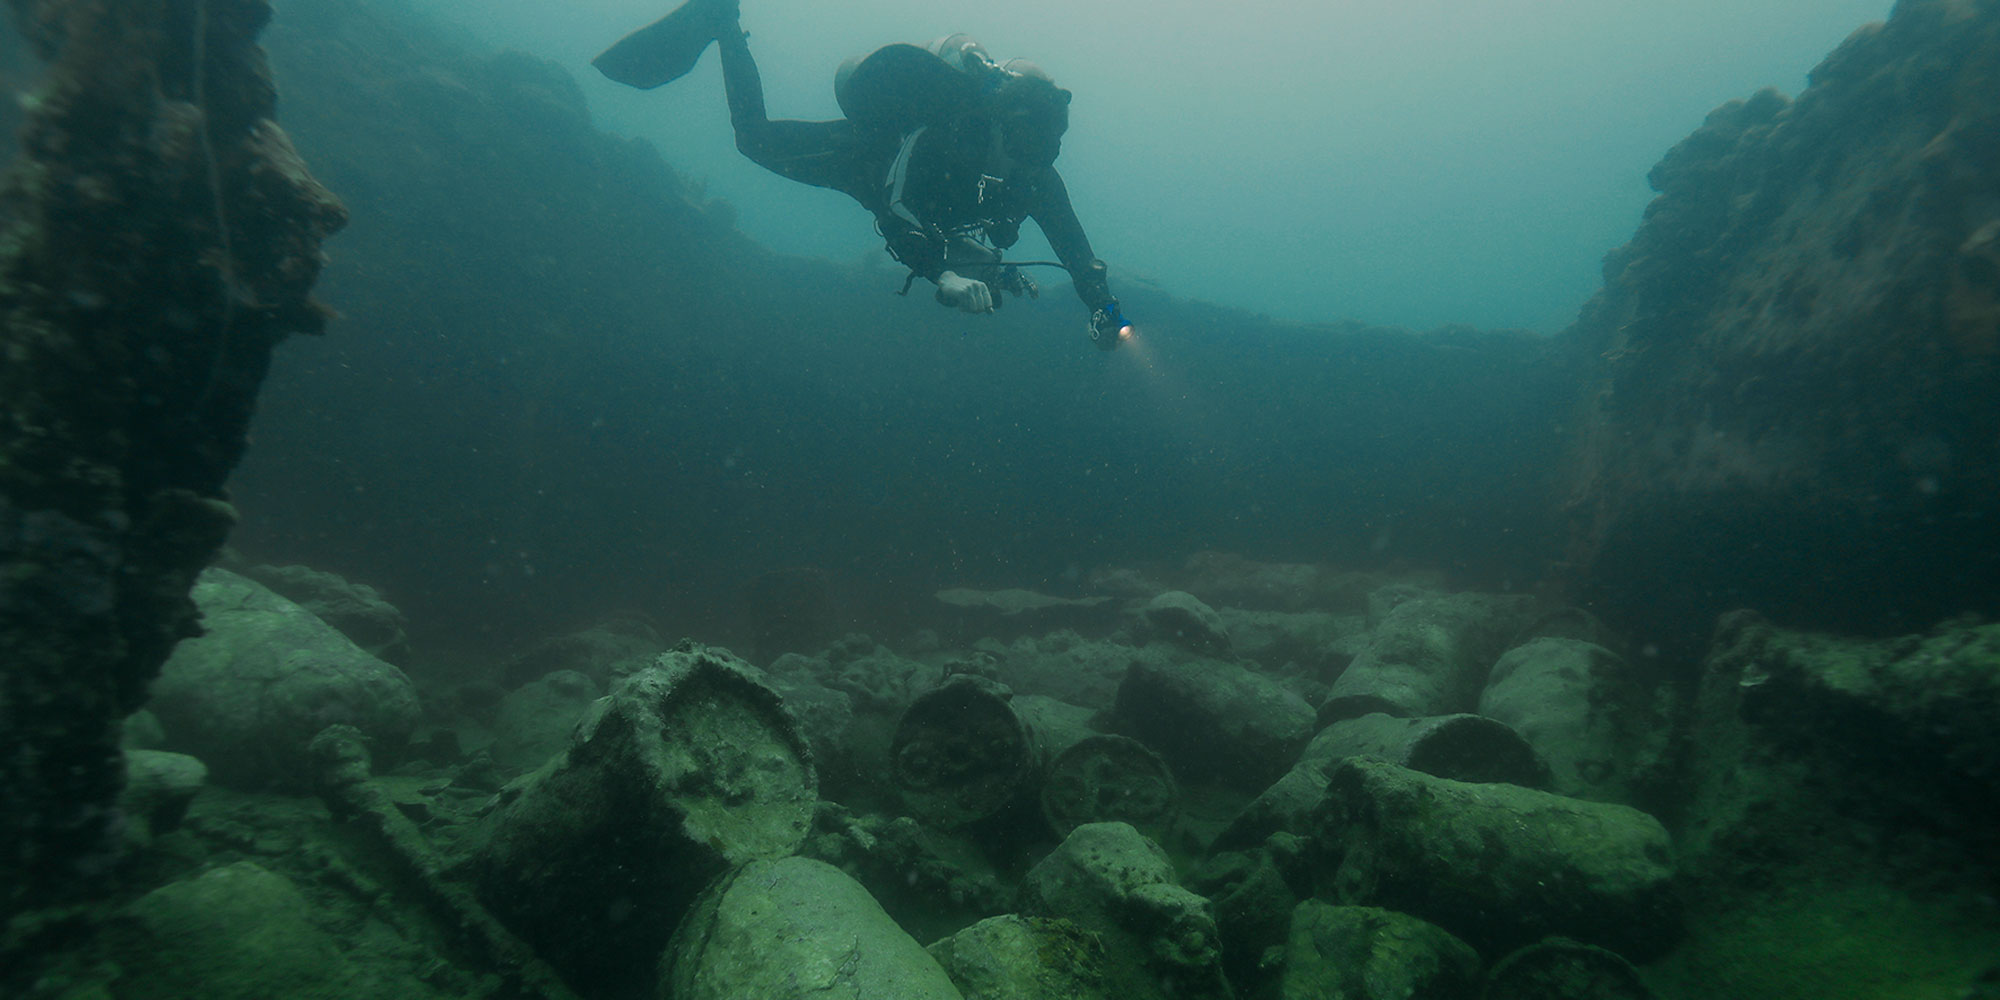 Matt Carter inspecting leaking unexploded ordnance on a WWII wreck in Palau